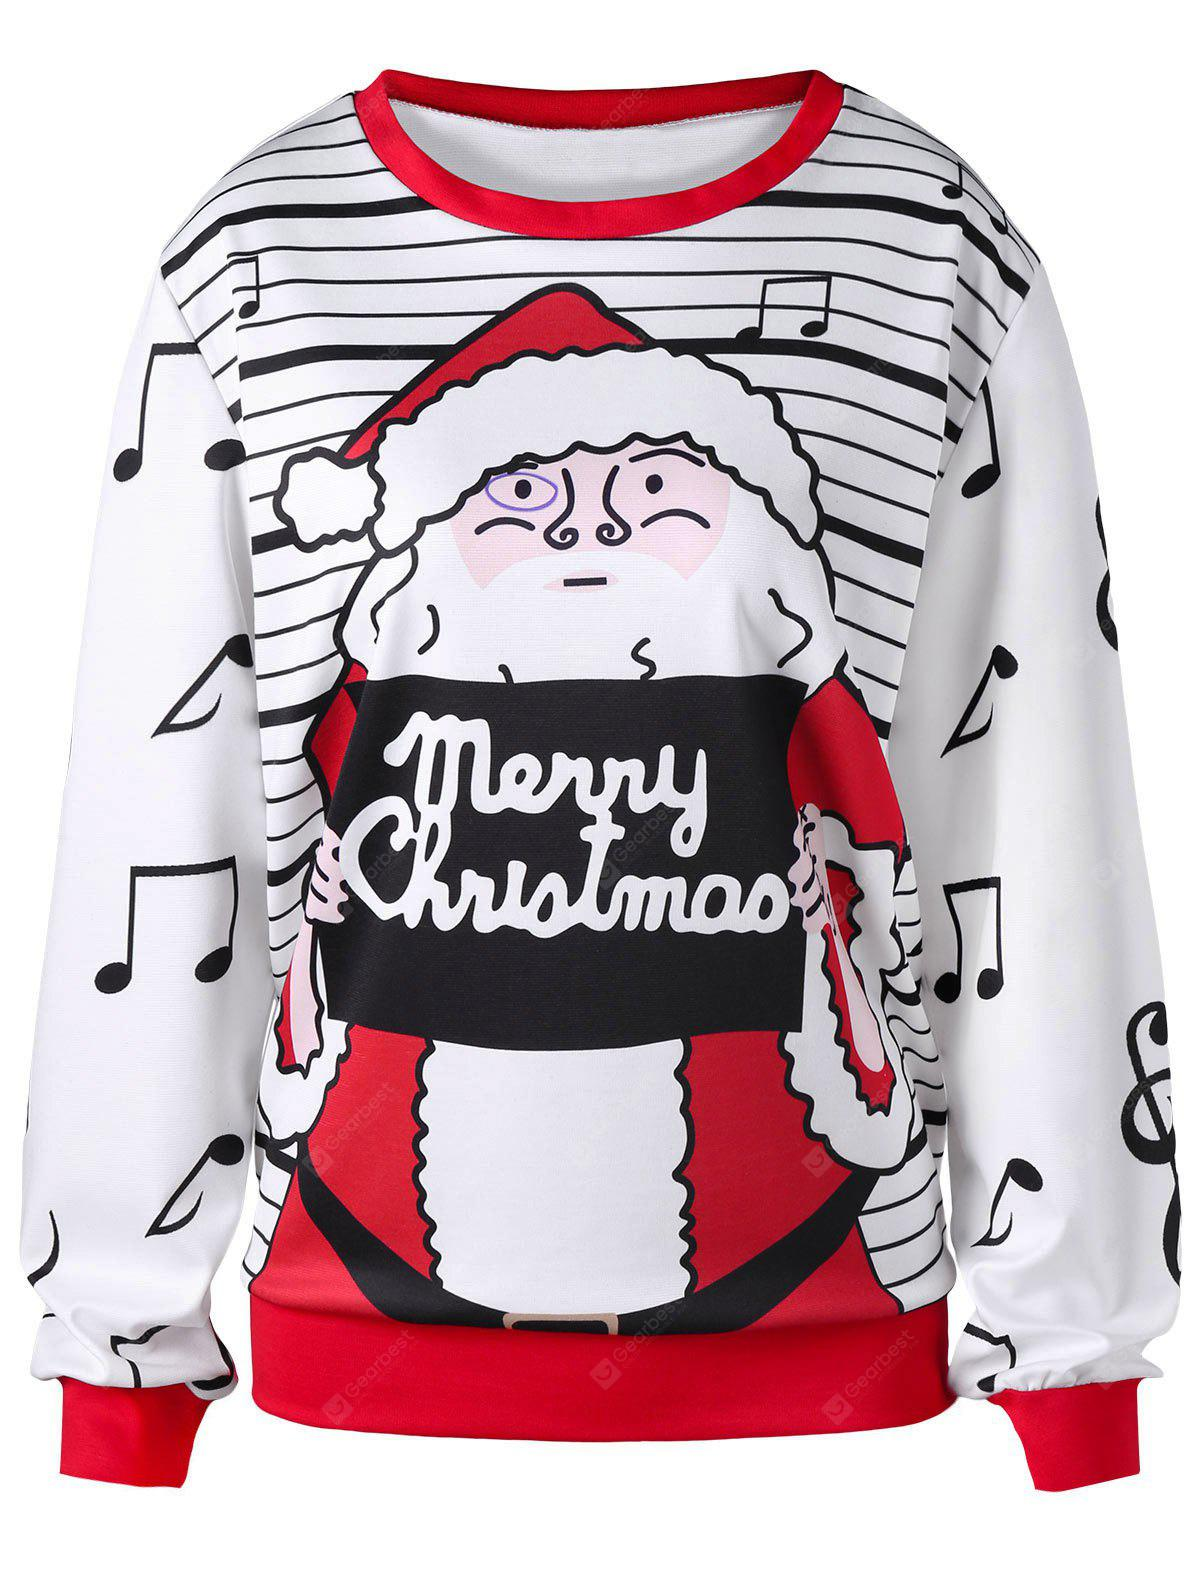 Plus Size Stripes Notas musicales Merry Christmas Pullover Sweatshirt